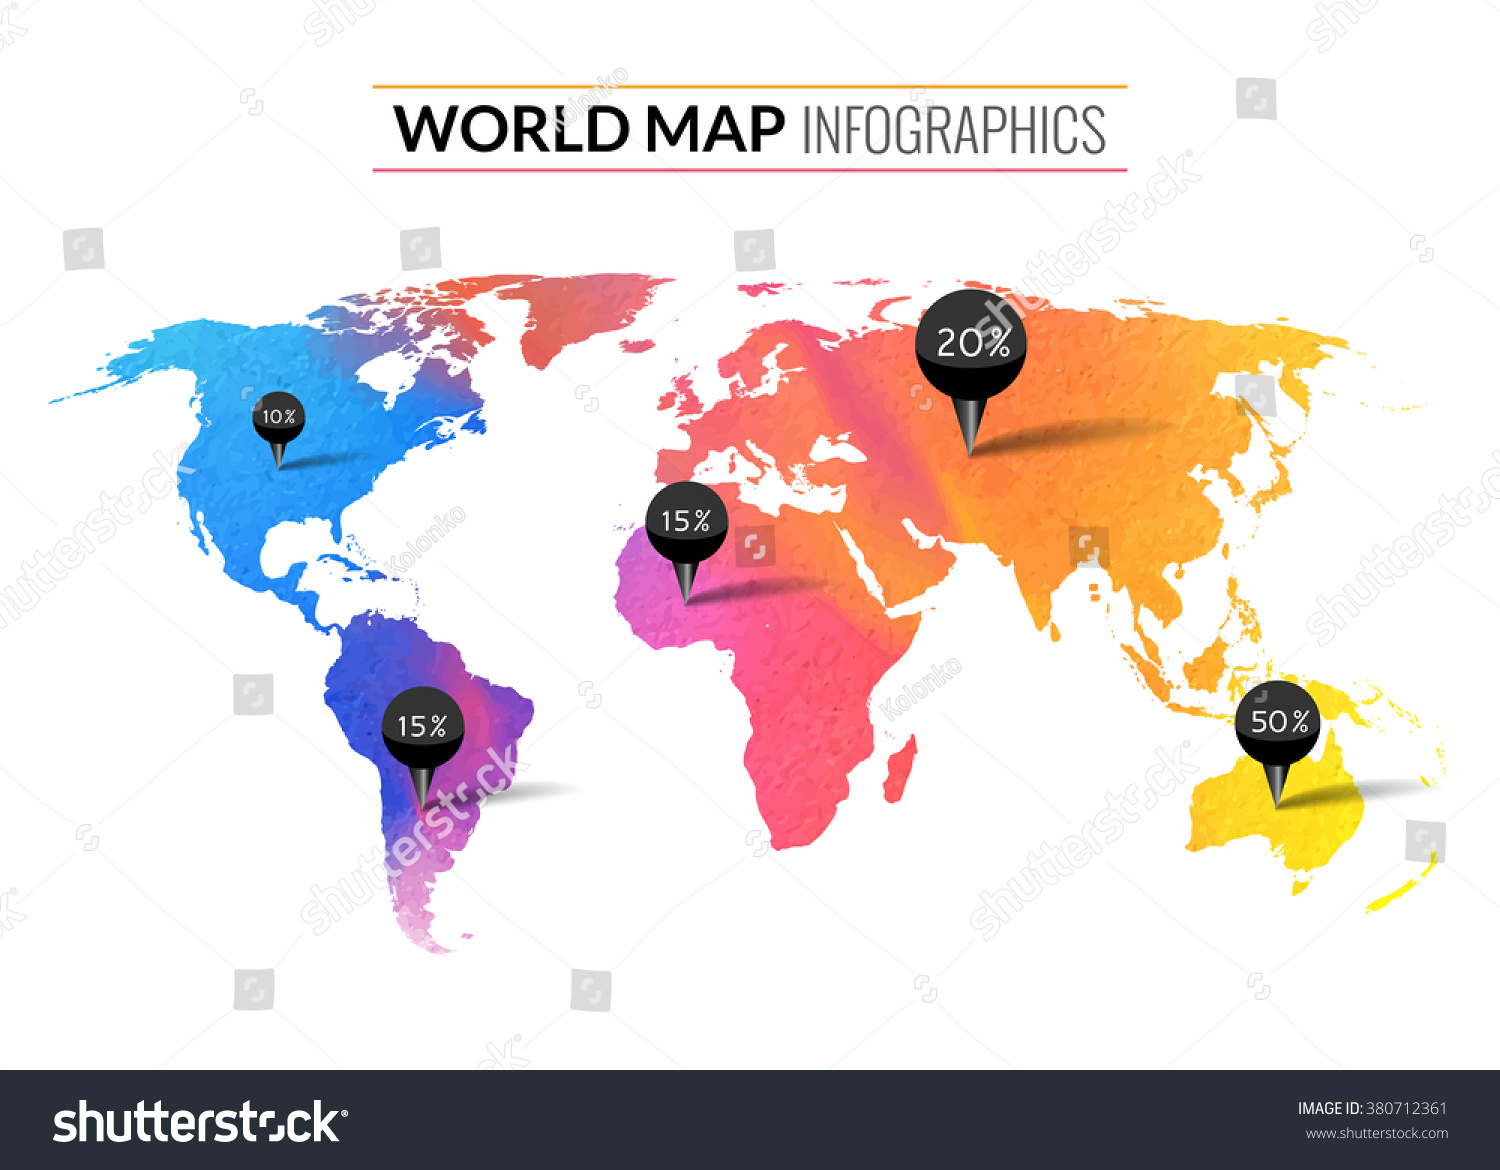 Colorful vector watercolor world map infographics vectores en stock colorful vector watercolor world map infographics world map wallpaper atlas travel earth gumiabroncs Gallery